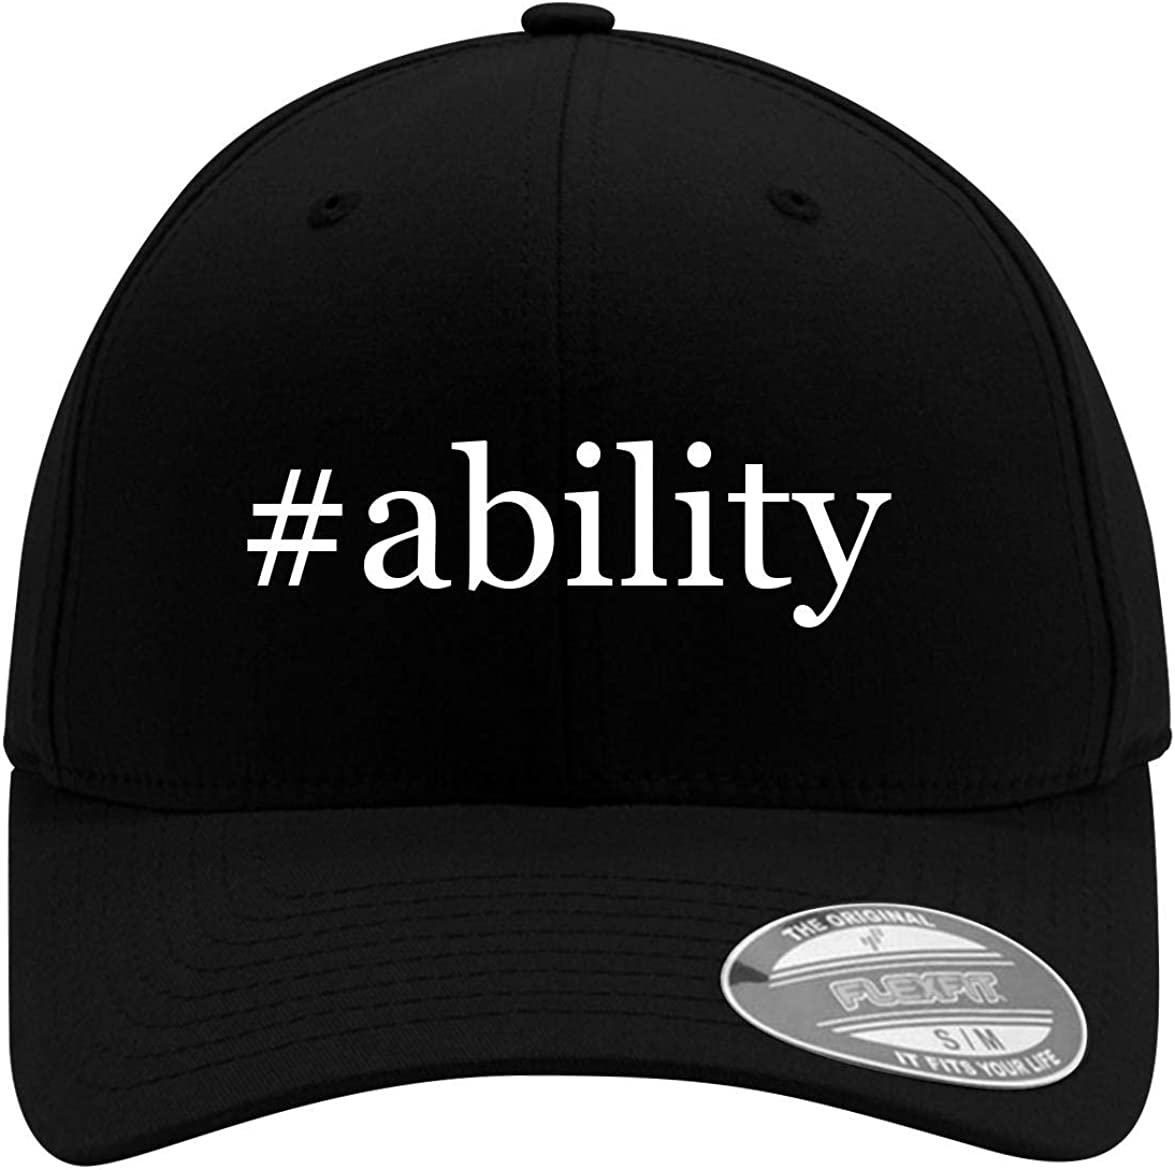 #ability - Adult Men's Hashtag Flexfit Baseball Hat Cap 61aISU5yyoL